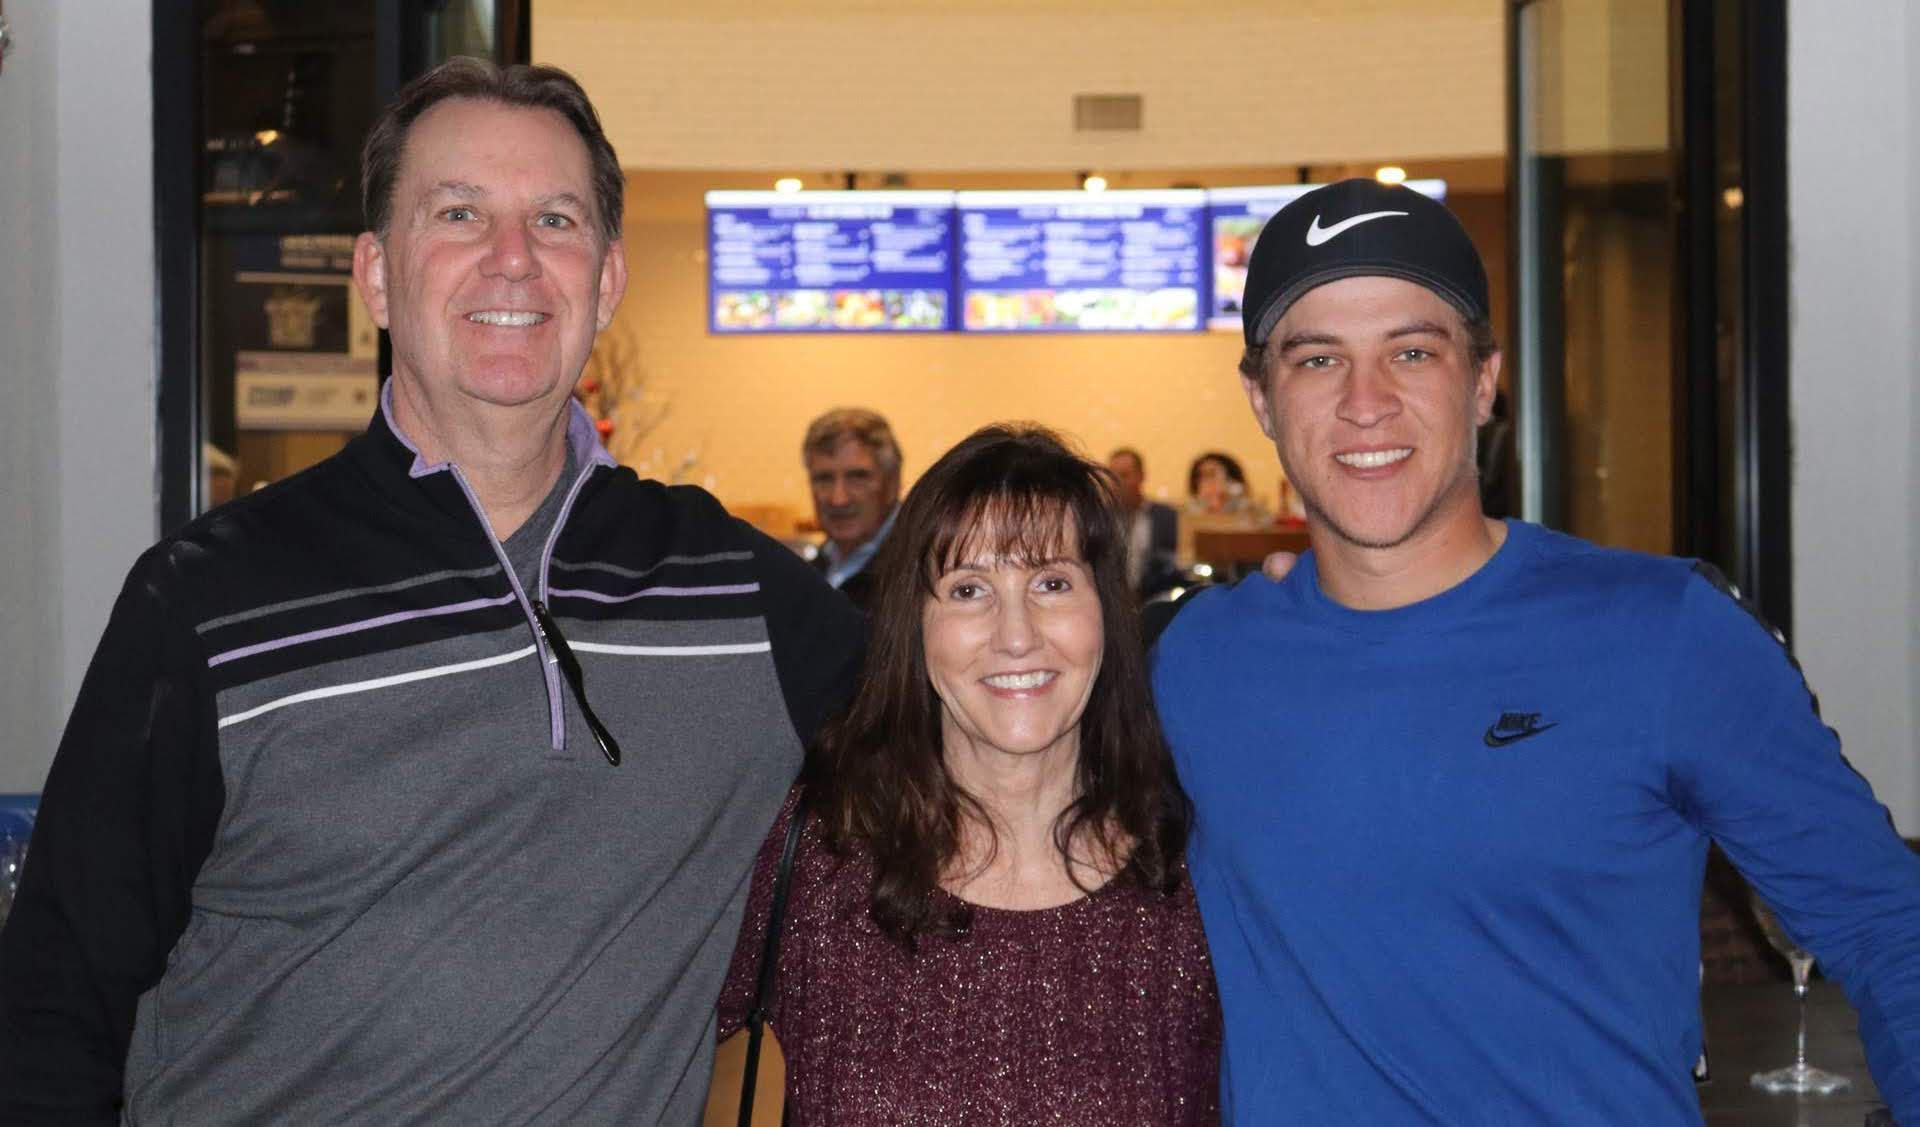 Cameron Champ Foundation holiday gift drive party